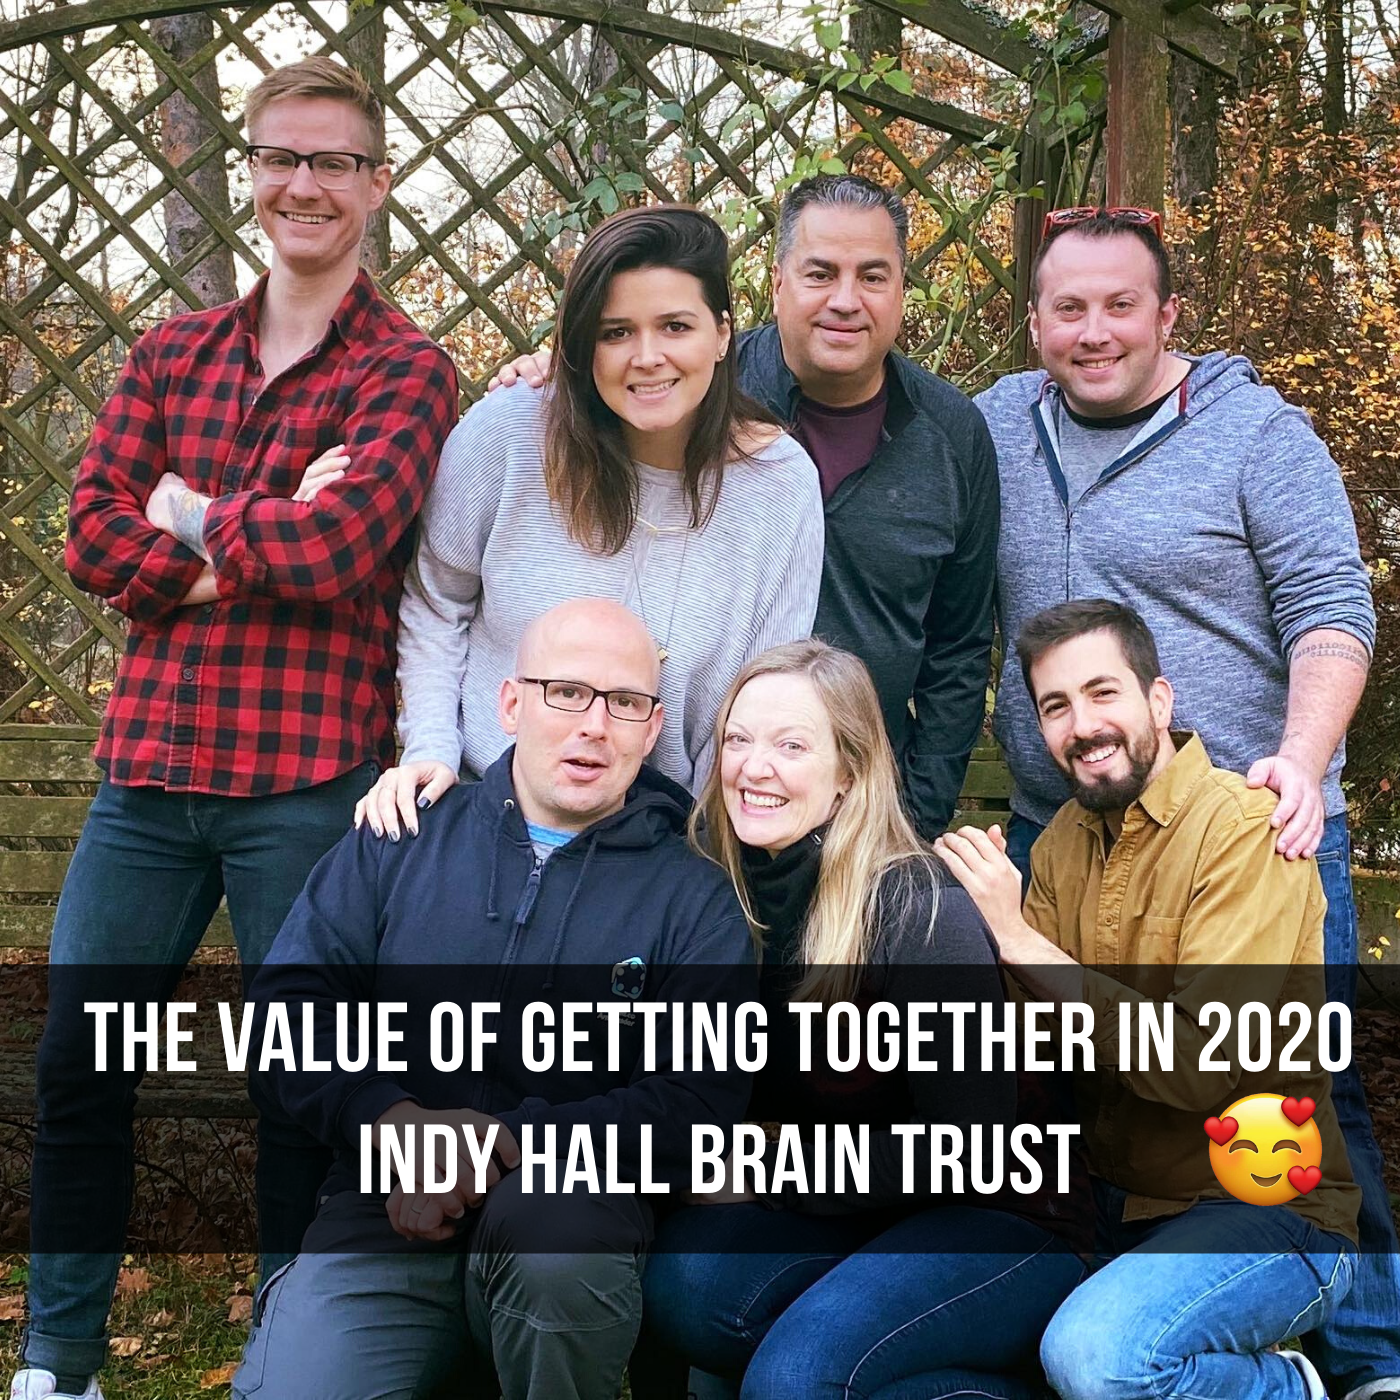 The Value Of Getting Together In 2020 – Indy Hall Brain Trust January 7, 2020 | By berniejmitchell